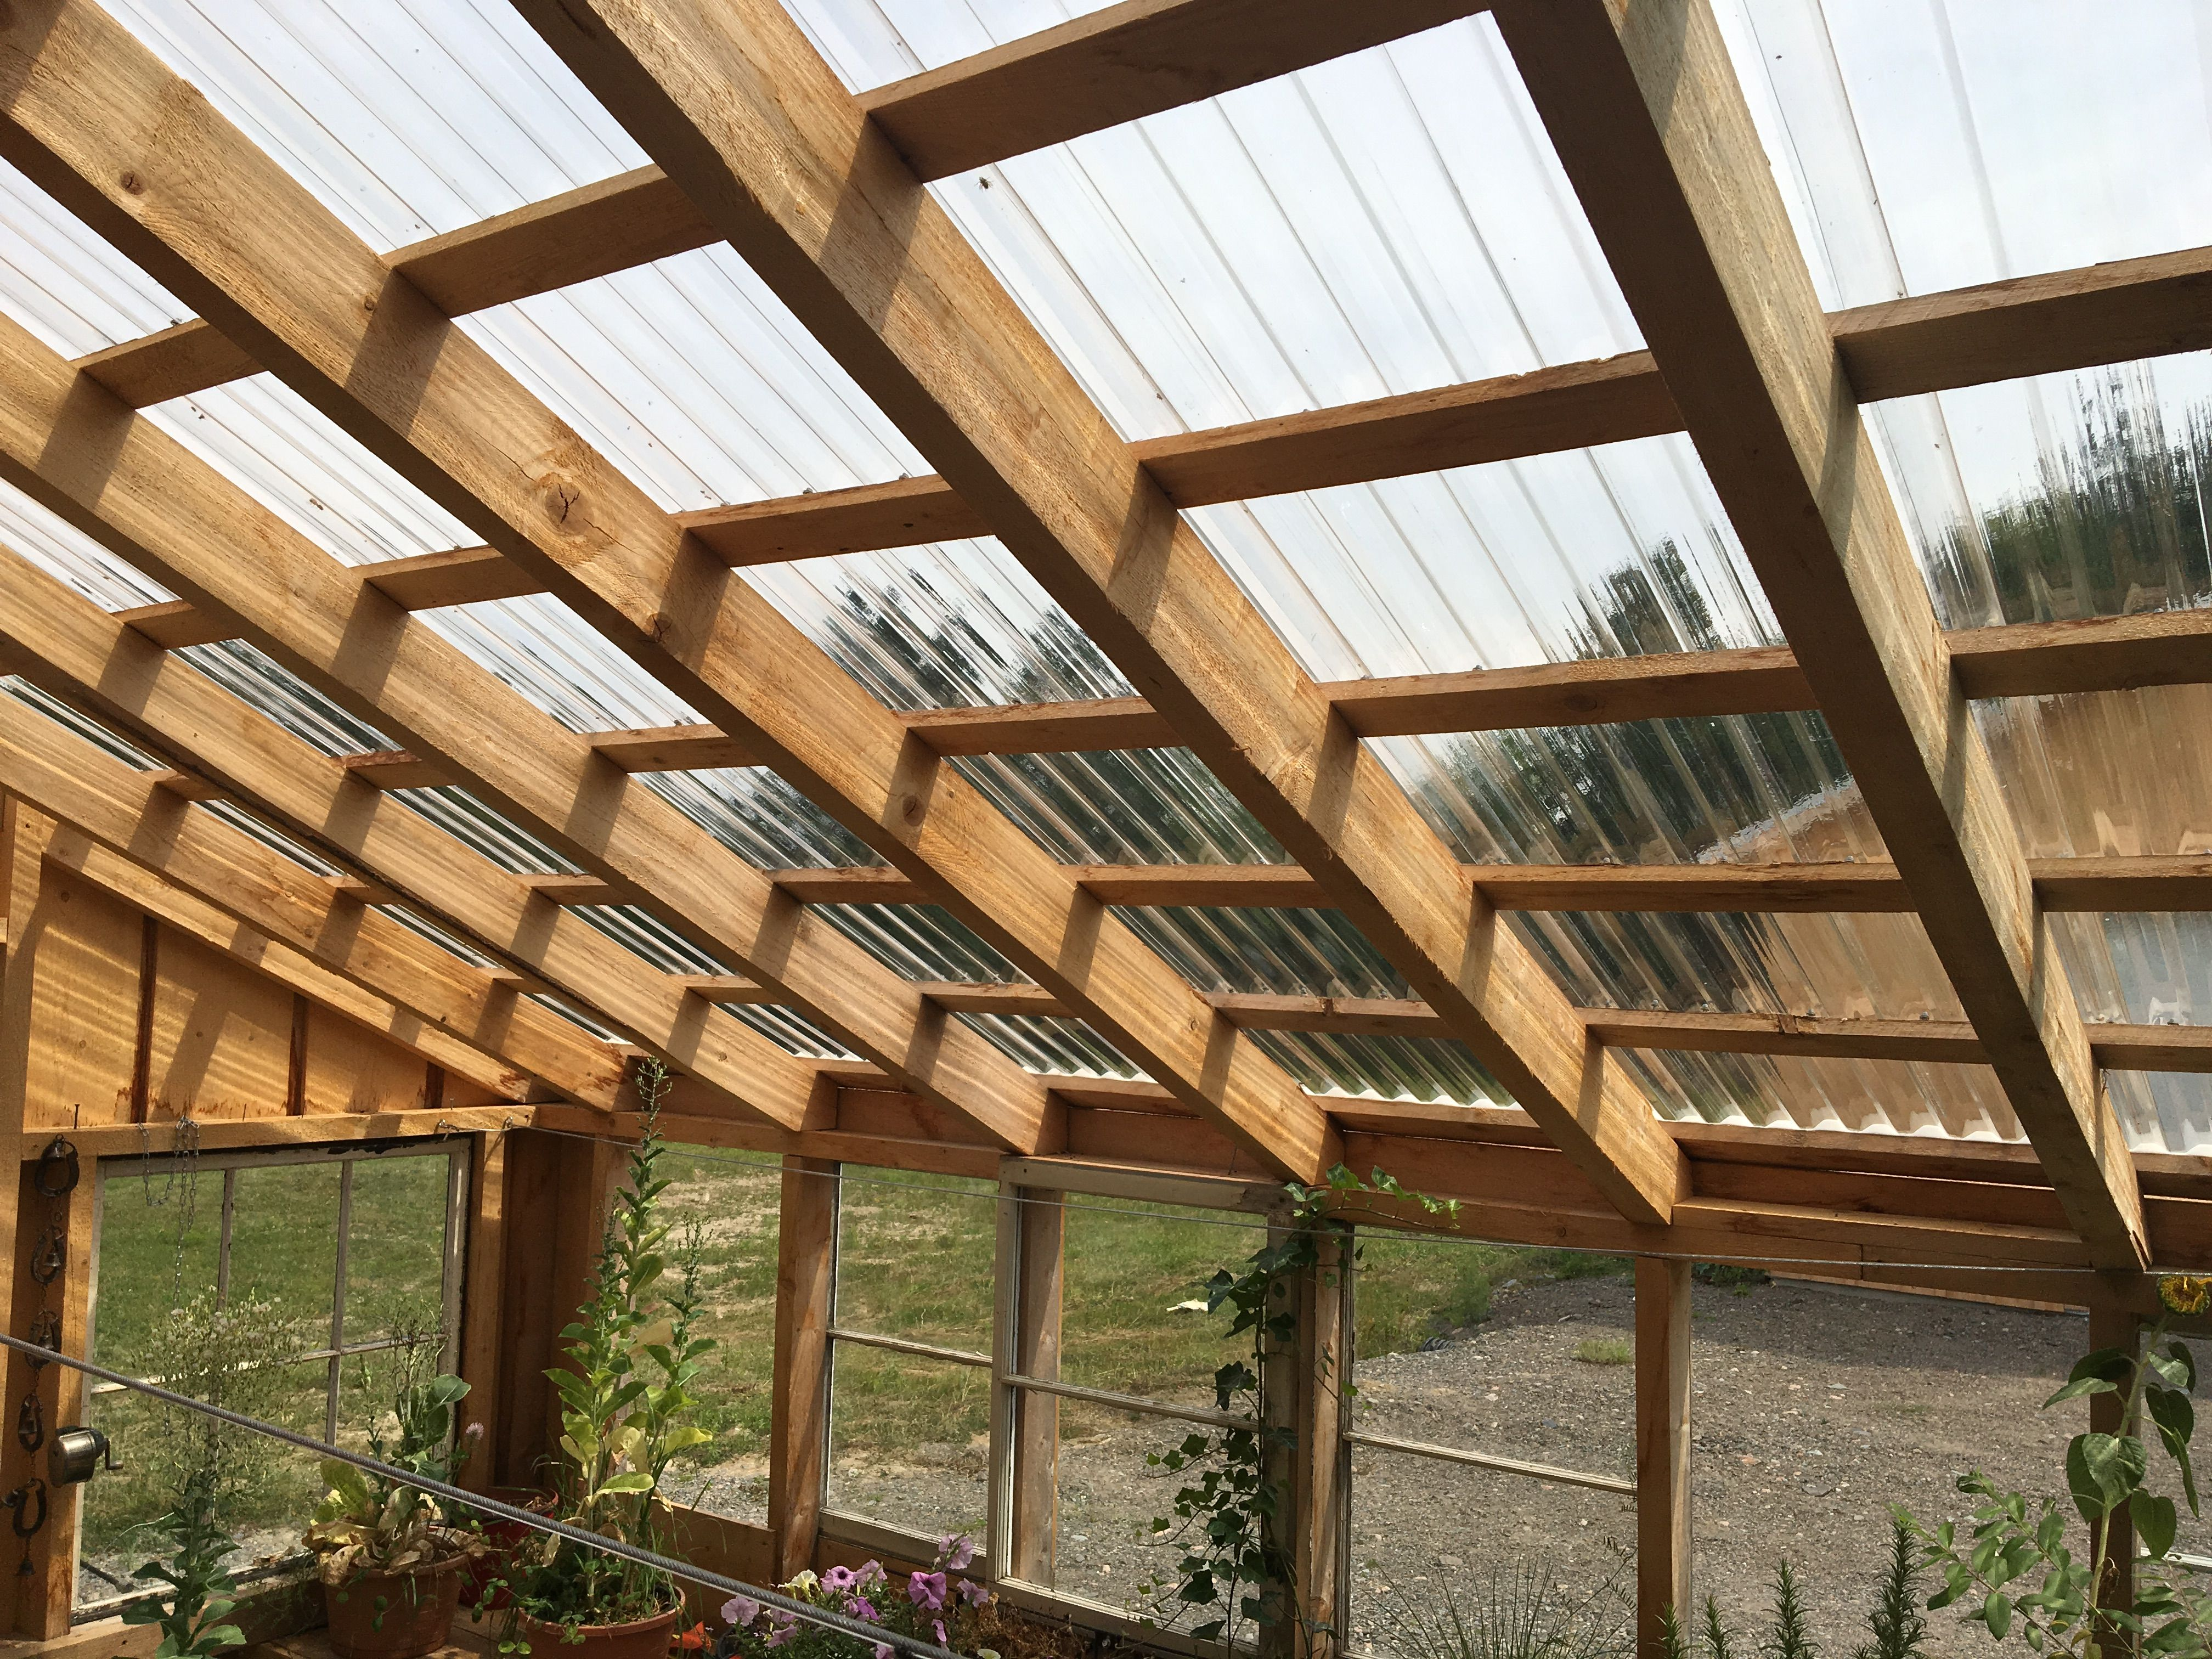 Clear Corrugated Roof Lets The Sun Shine In Pergola Pergola Plans Pergola With Roof